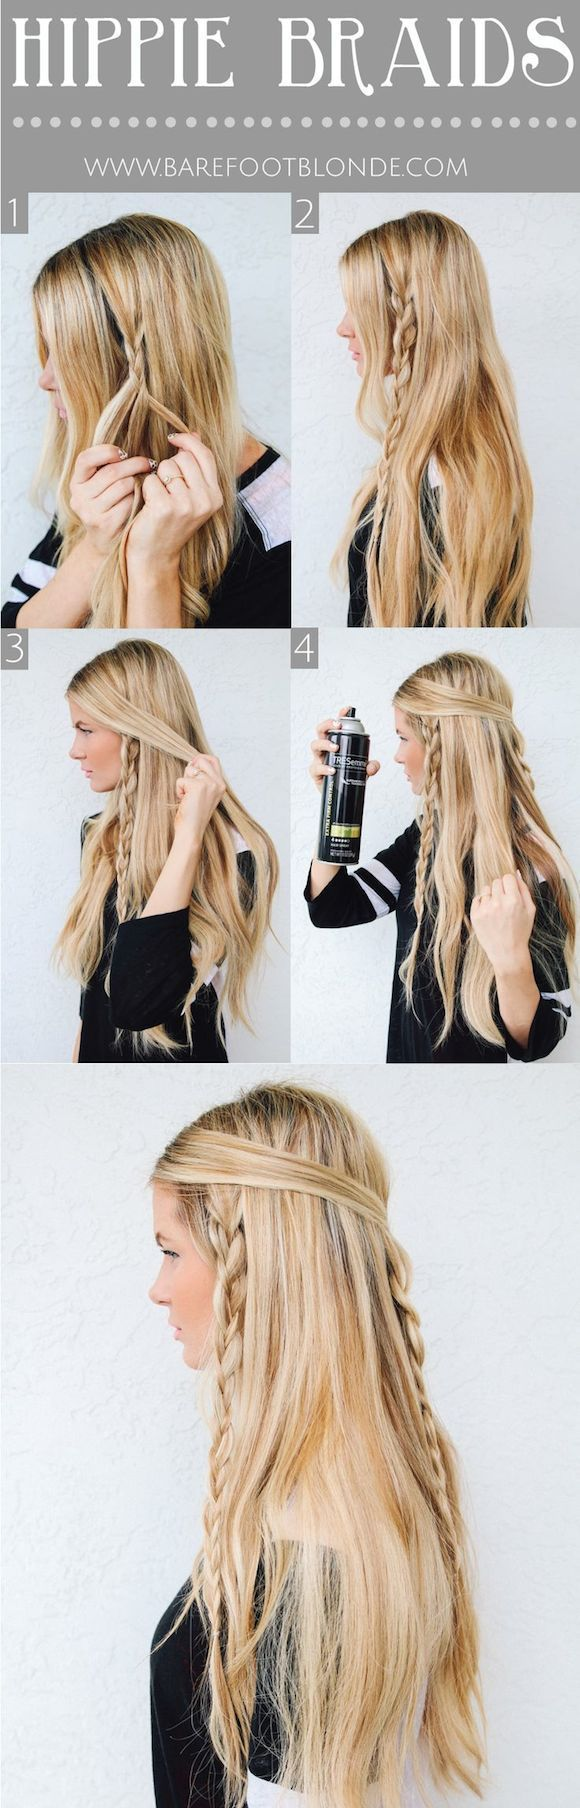 10 Of The Best Braided Hairstyles | Awesome DIY Hair Updo For Long Hair By Makeu...